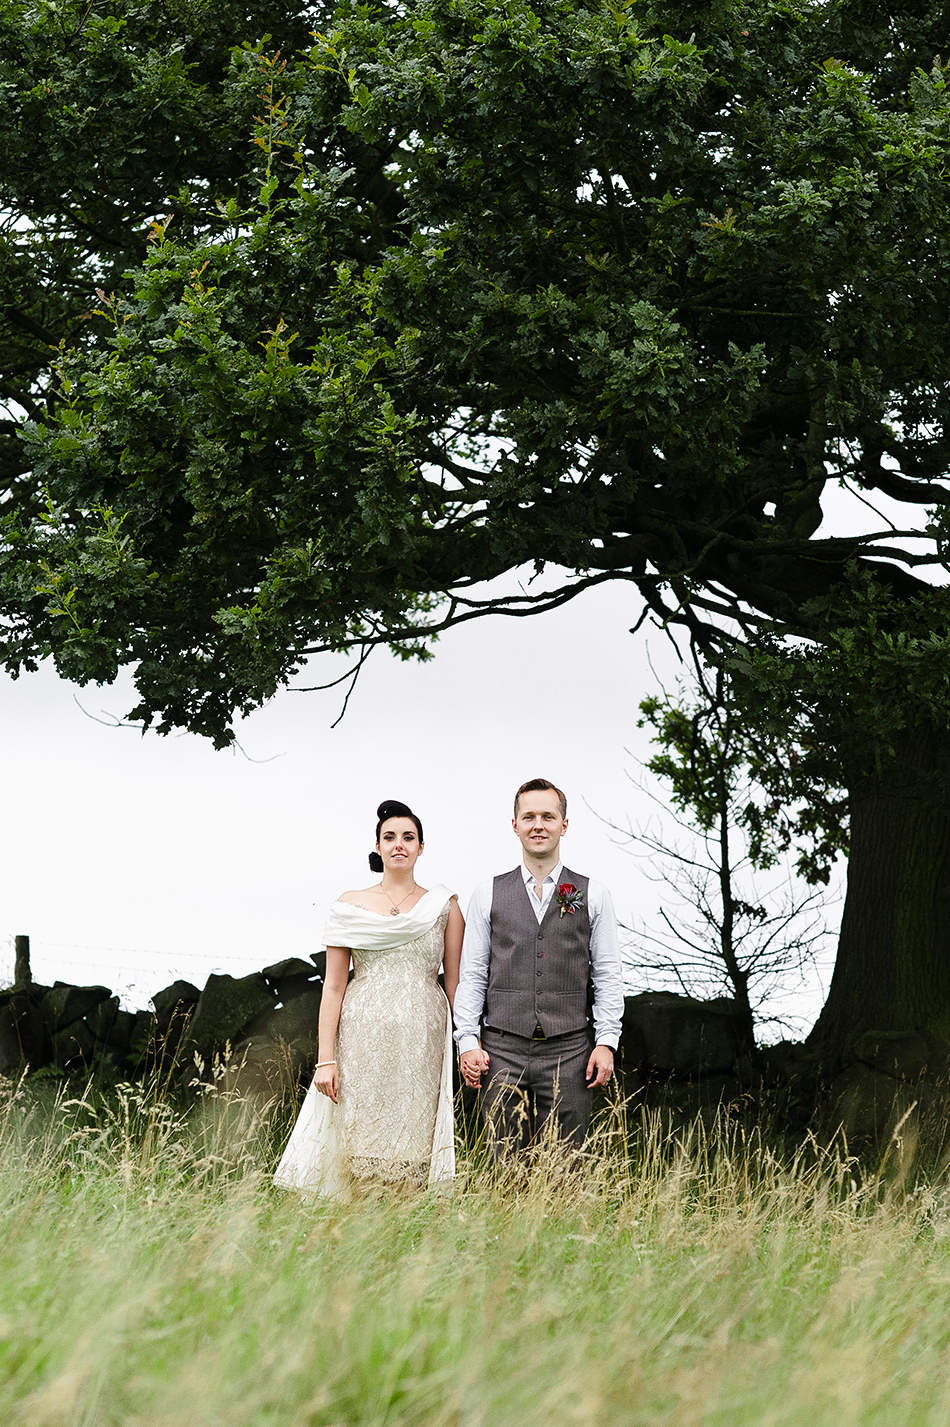 creative reportage wedding photography in a hall diy wedding farm style harrogate 0005